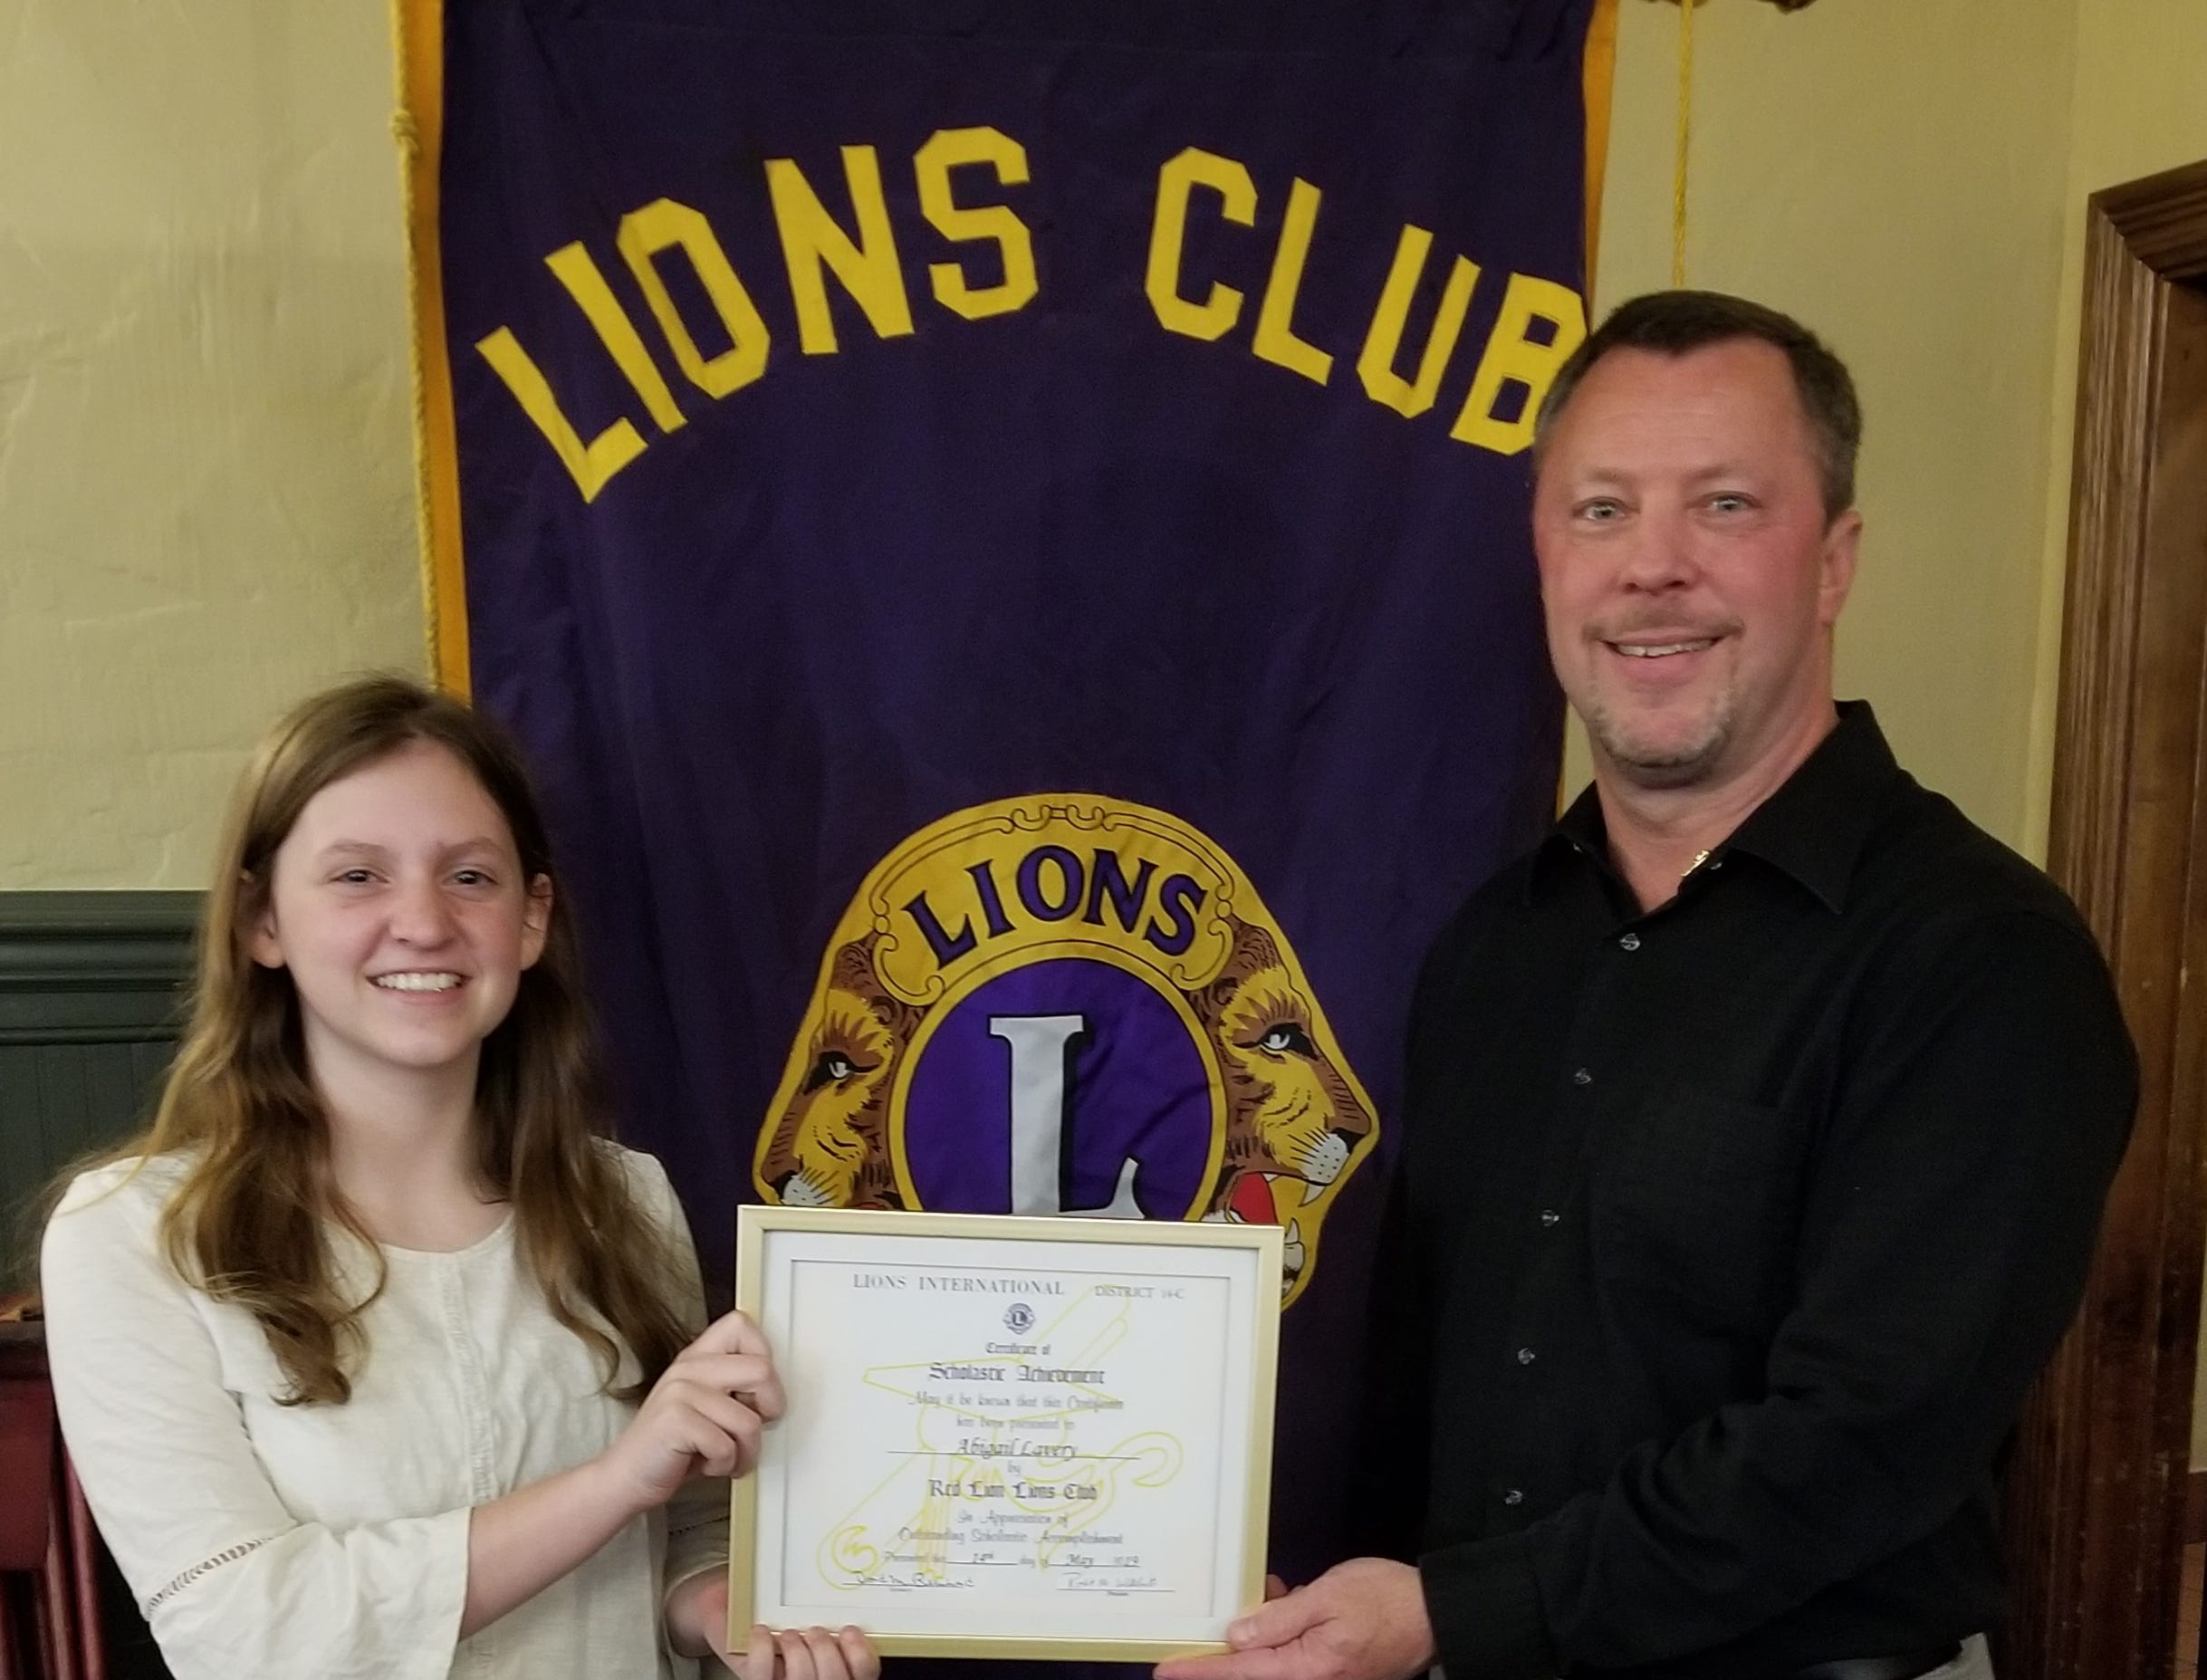 The Red Lion Lions Club is proud to recognize Abigail Lavery who was selected as the Red Lion Area Junior High School Student of the Month for April 2019. Pictured are Abigail Lavery and John H. Fishel, Co-Chairman of the Education Committee. submitted